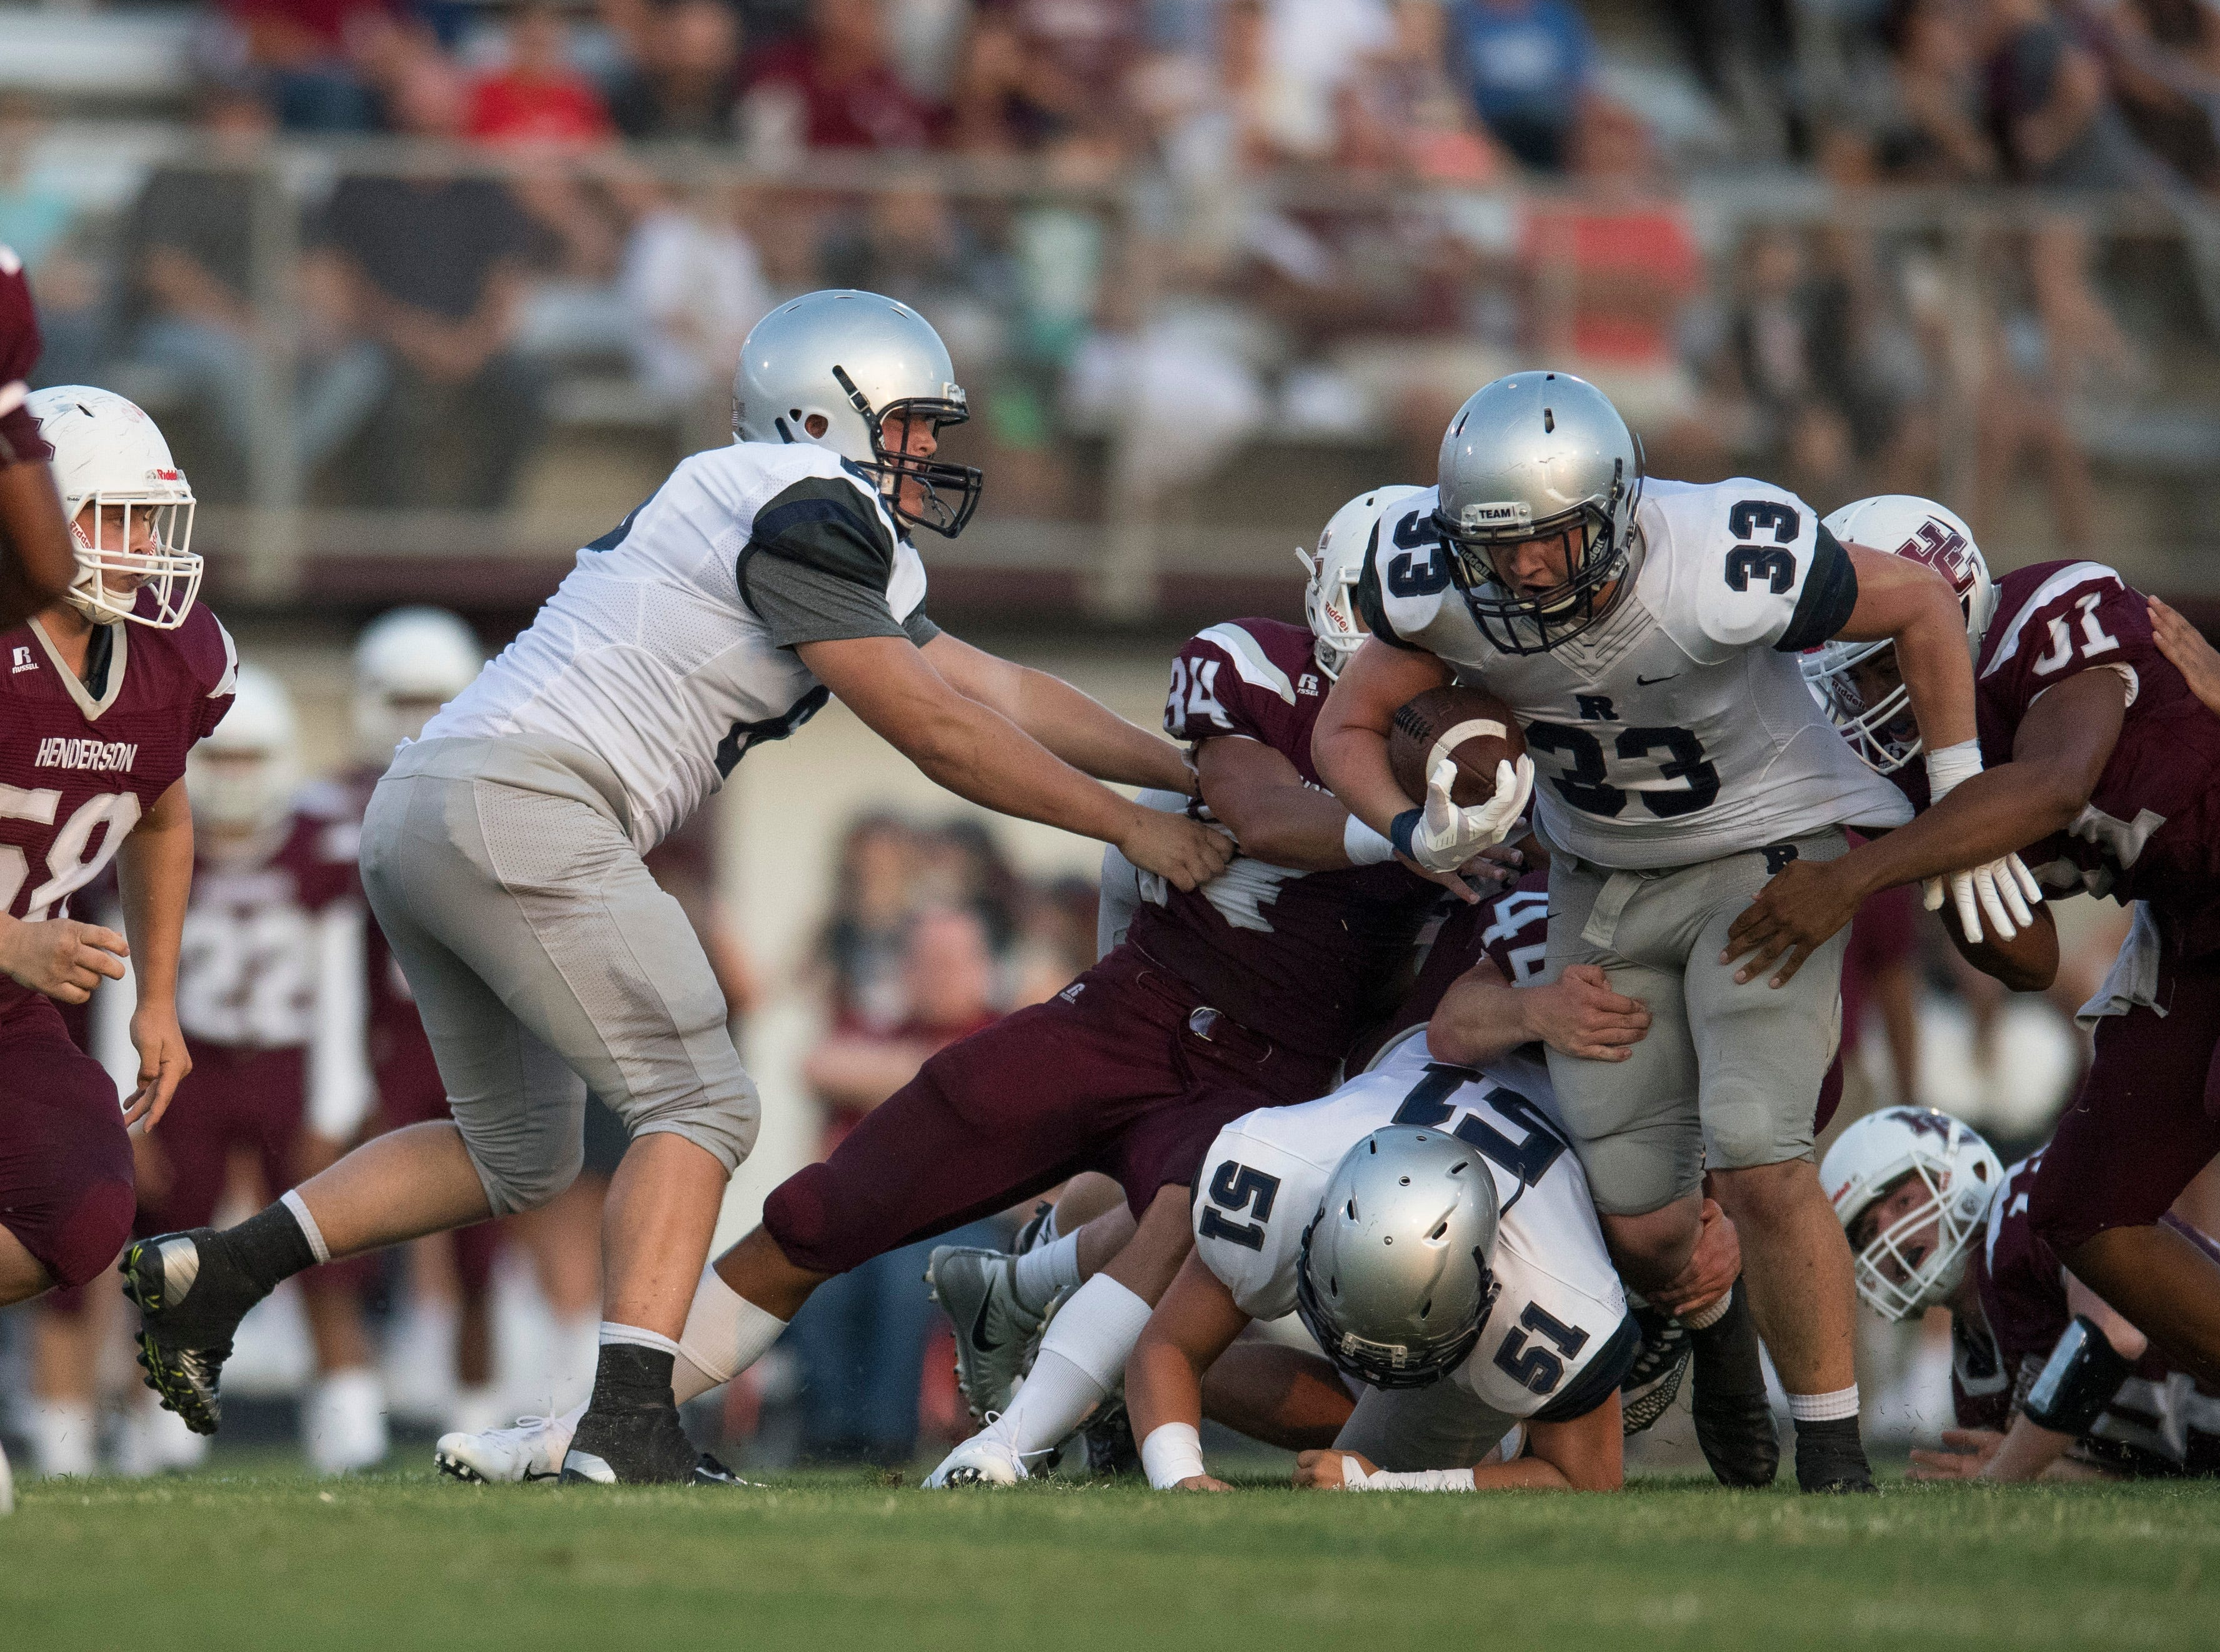 Reitz's Carter Schnarr (33) is tackled by Henderson County defense during the Reitz vs Henderson County game at Colonel Stadium Friday, August 17, 2018. The Panthers defeated the Colonels 41-35 in the season opening game.